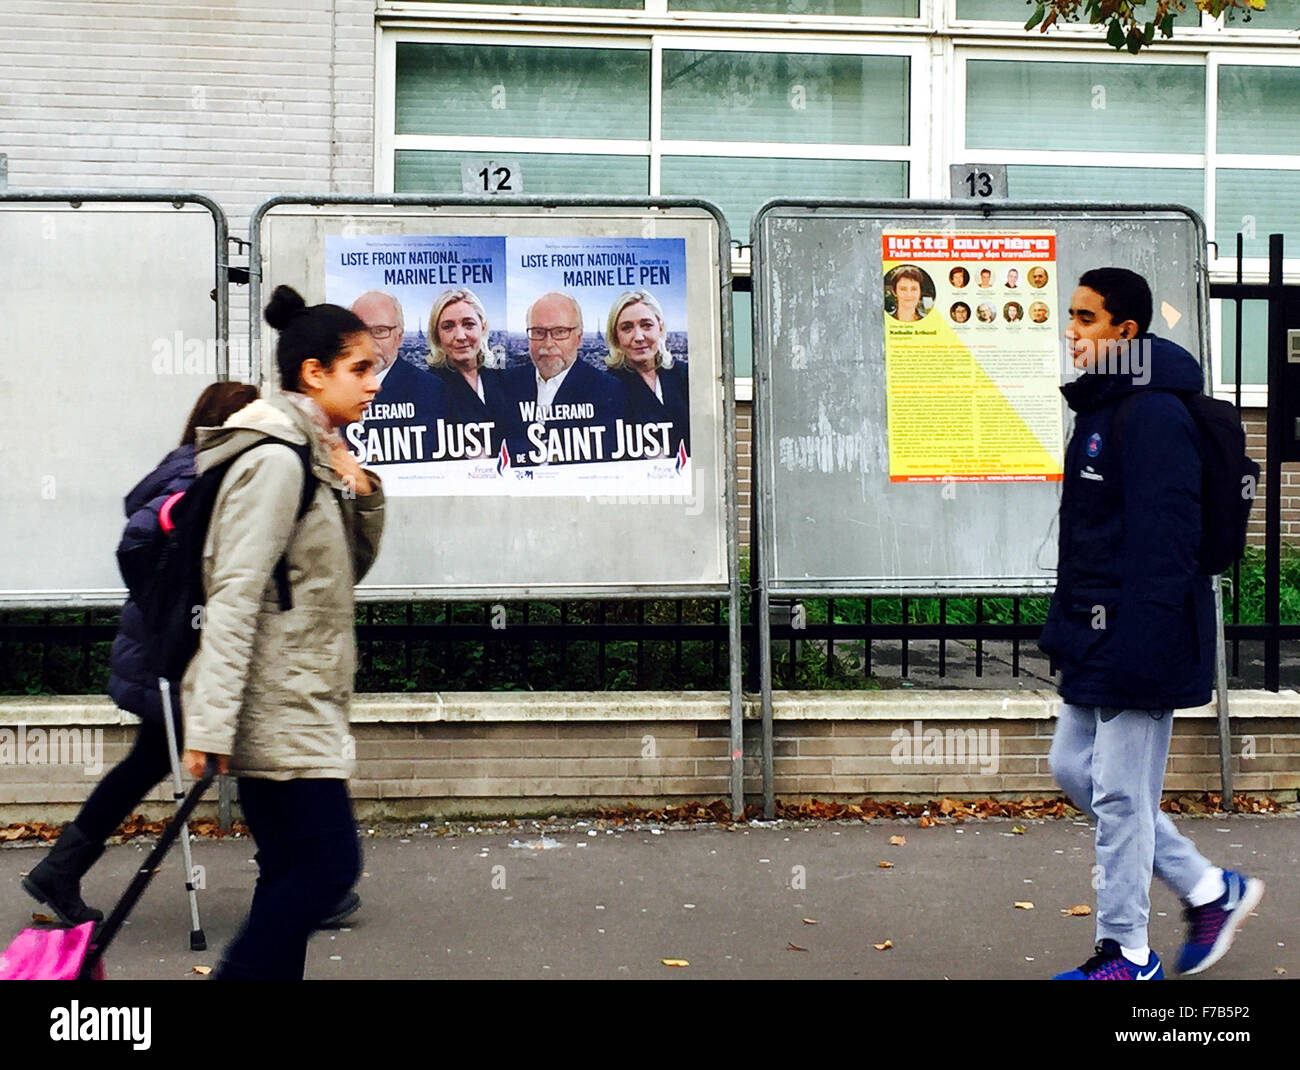 Paris. 26th Nov, 2015. Photo taken on Nov. 26, 2015, shows posters of candidates running for the upcoming regional - Stock Image